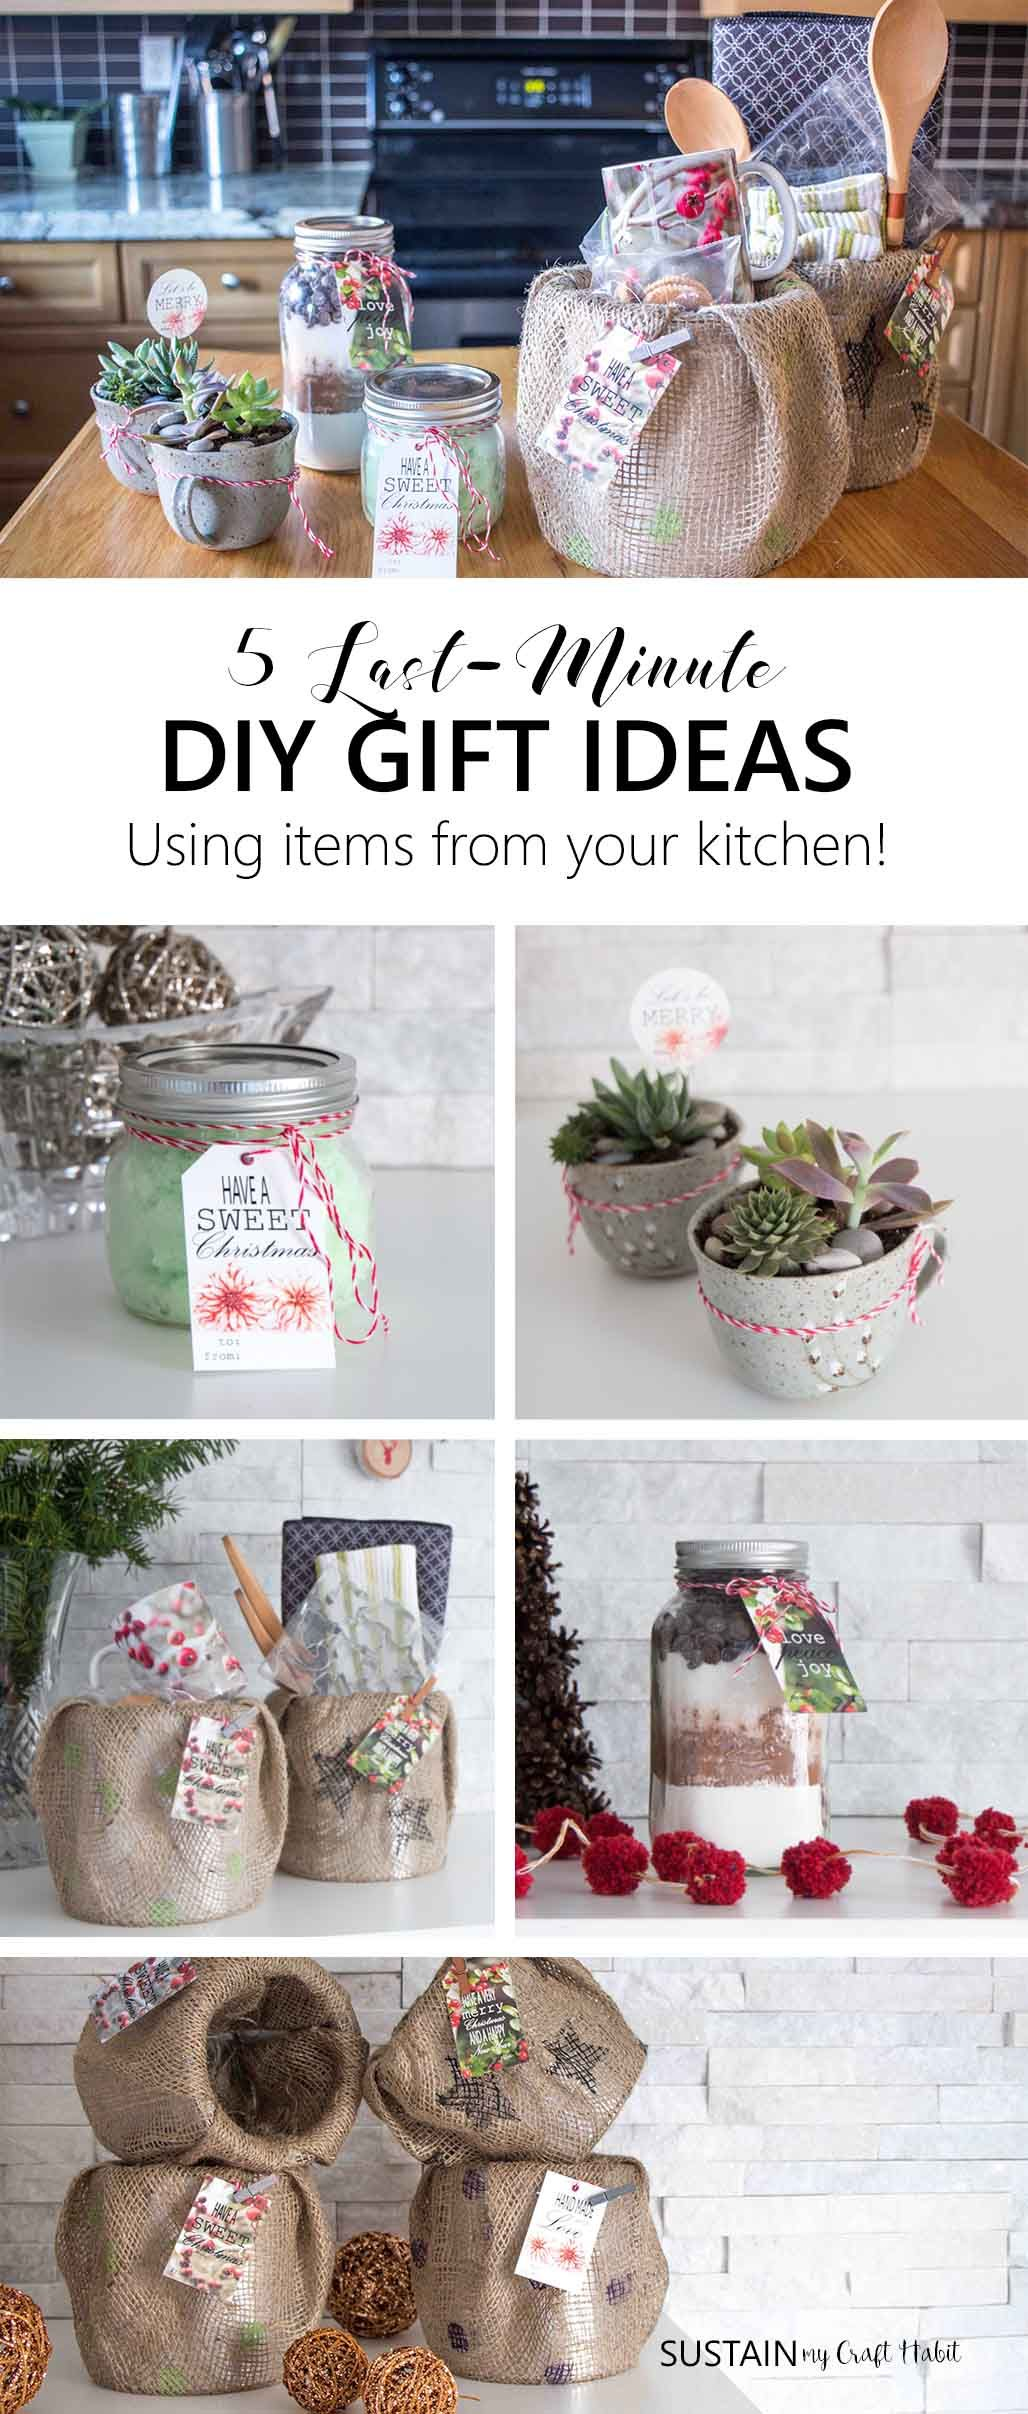 83f5acde52ed Thoughtful gift-giving doesn t need to break the bank. Take a look in your  own kitchen for supplies to make any of these quick and easy handmade gift  ideas.